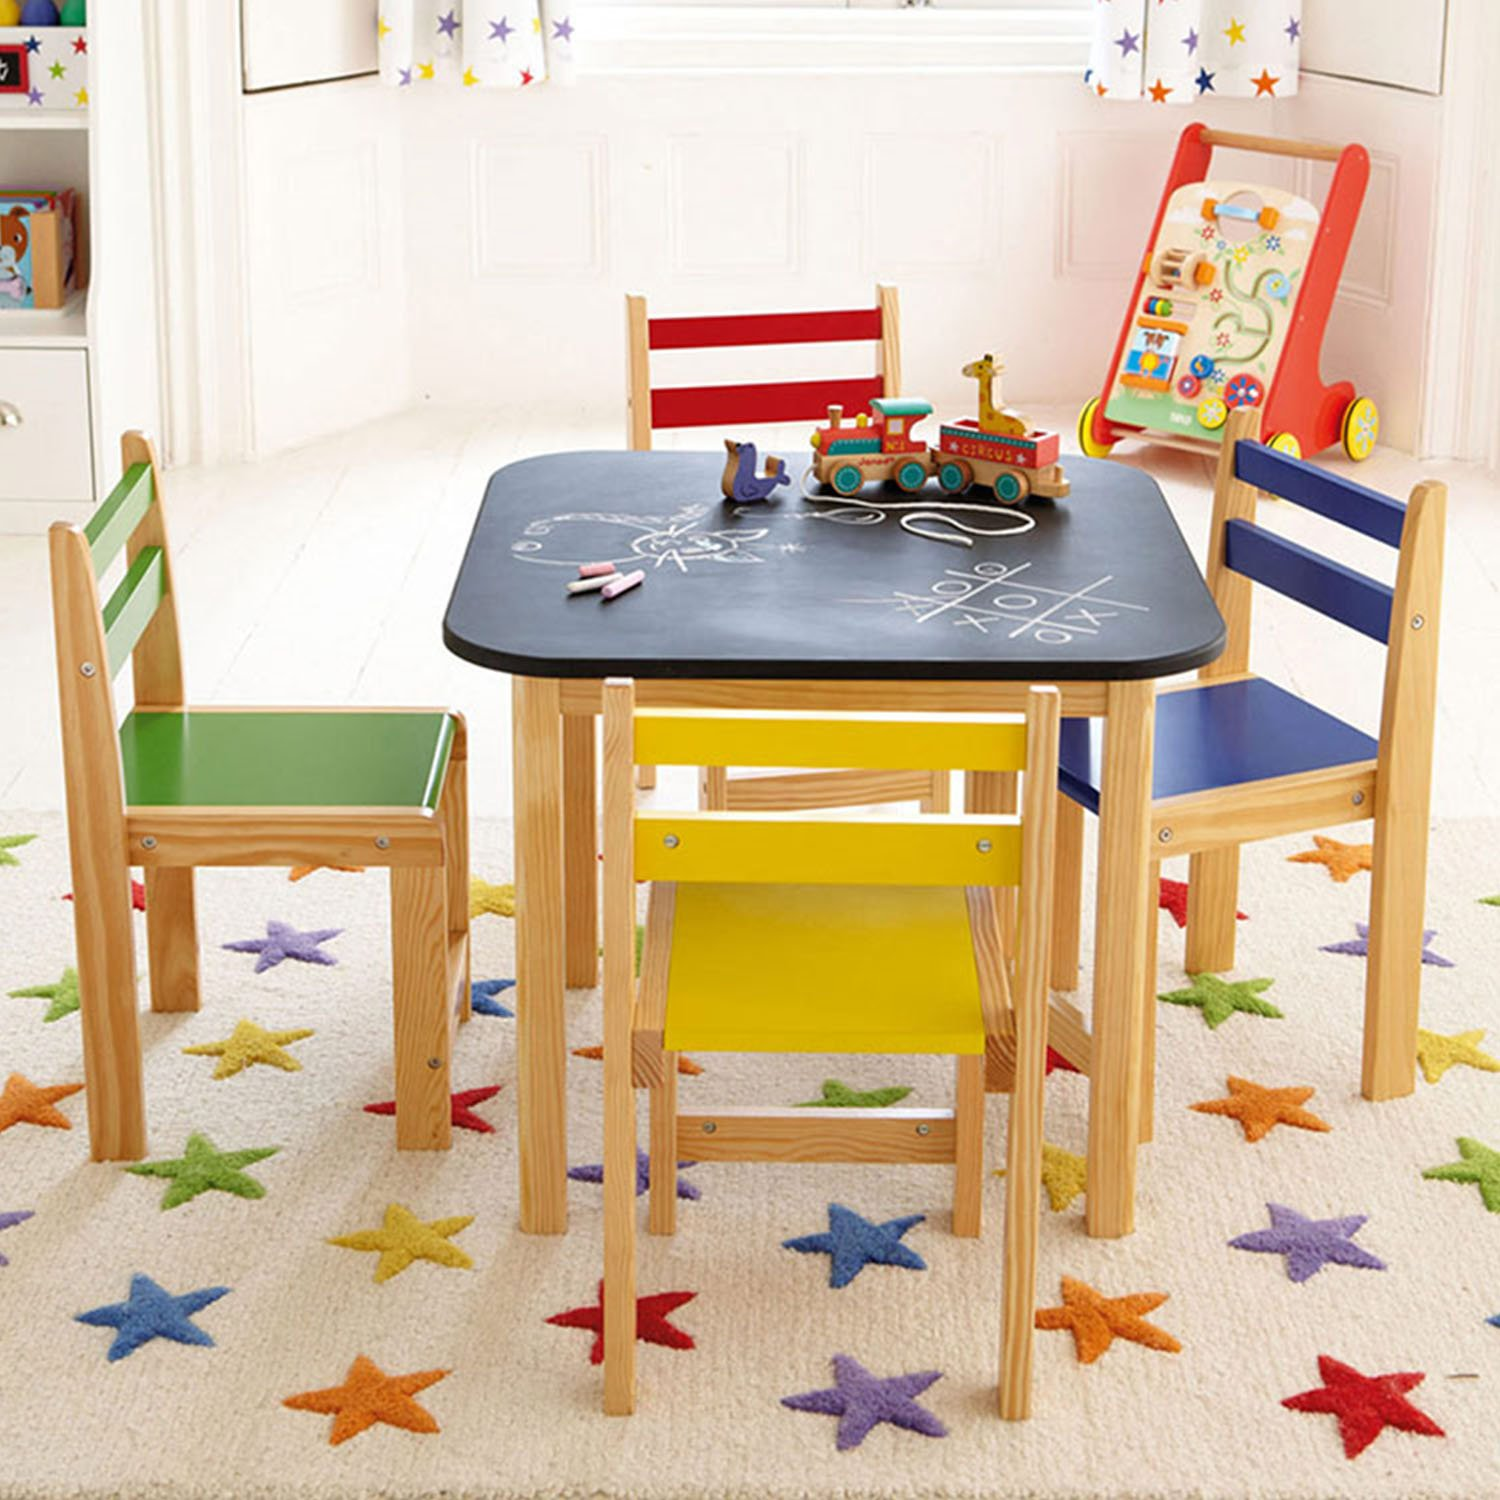 Taylor & Brown Childrens Kids Blackboard Top Wooden Table and 4 Chairs Set Activity Wood Furniture Play Set